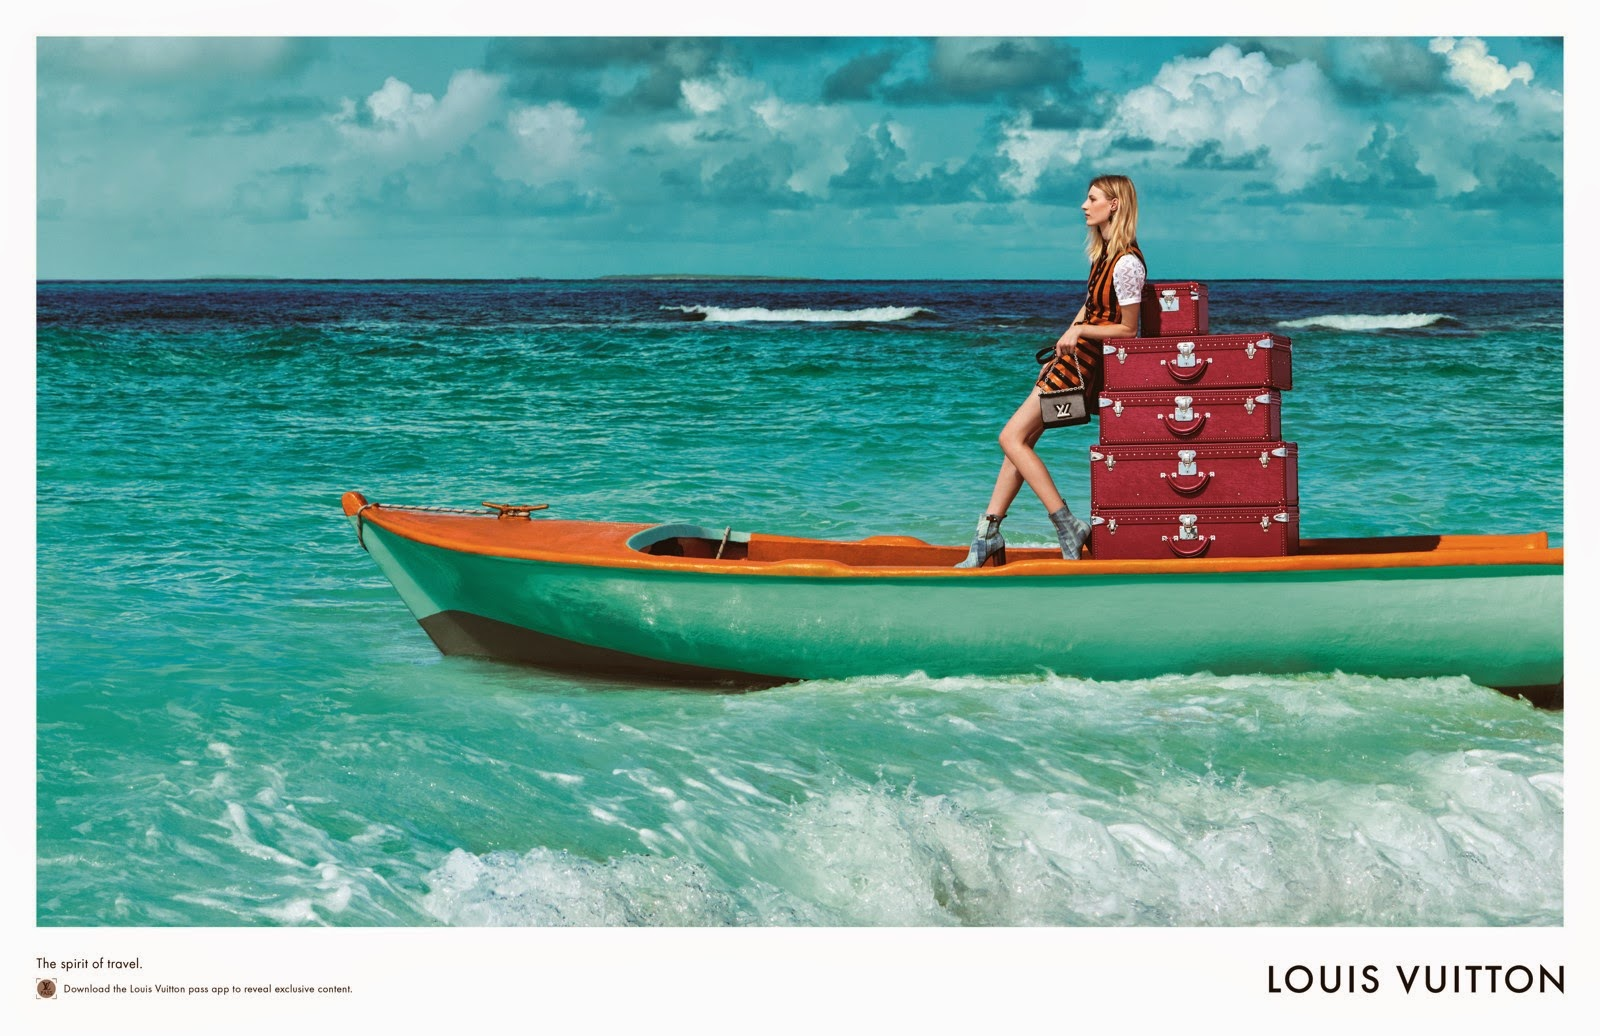 Louis Vuitton, Patrick Demarchelier, Liya Kebede, Maartje Verhoef, Julia Nobis, Louis Vuitton campagne, Louis Vuitton Spirit of Travel, LV Spirit of travel, du dessin aux podiums, dudessinauxpodiums, Epi, sac LV Epi, louis vuitton epi, sac epi LV, sac epi louis vuitton, malle LV, malle Louis Vuitton, Epi landscape